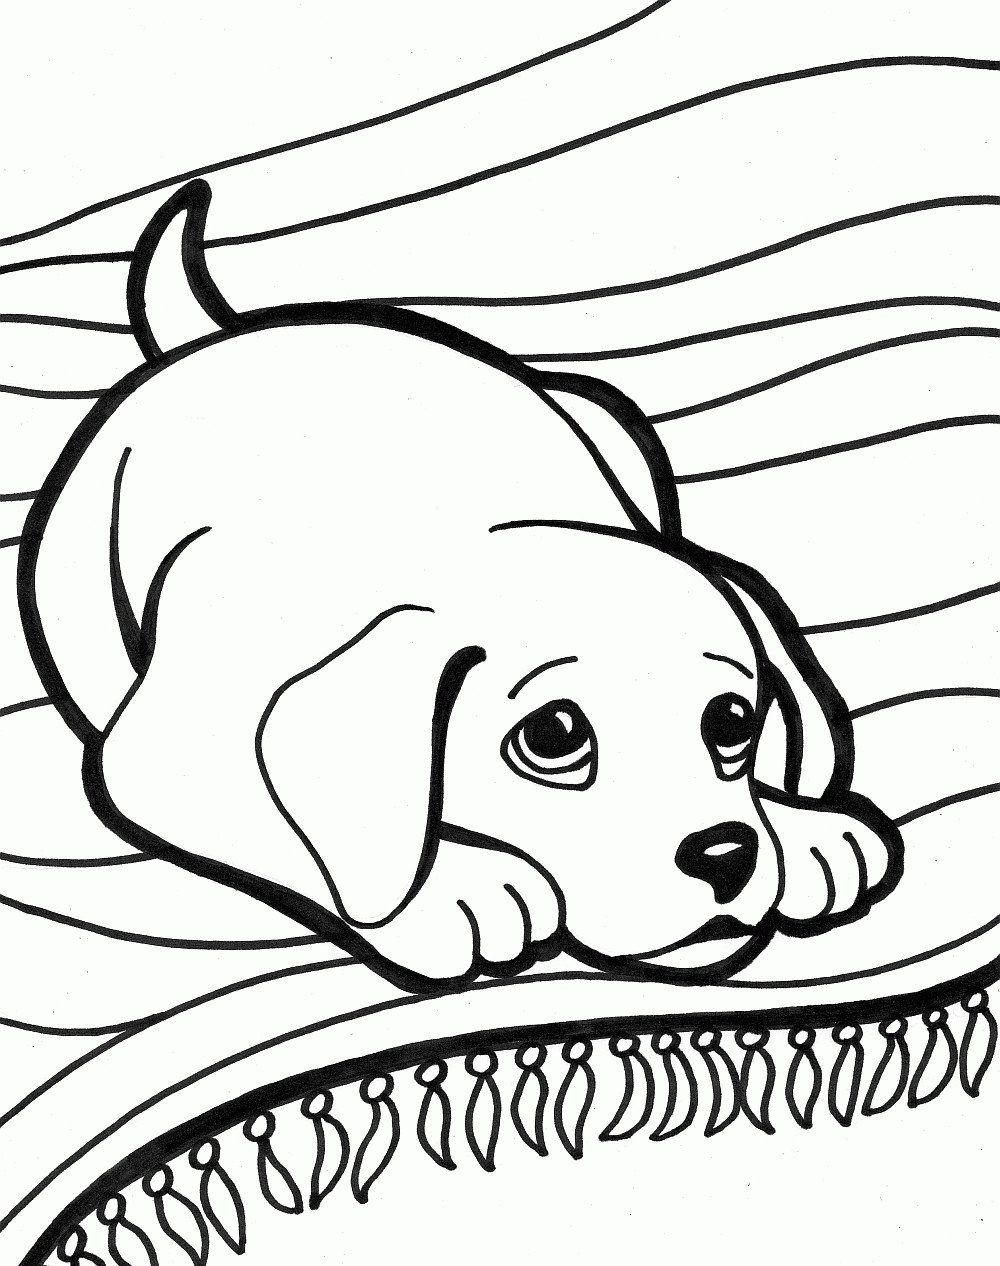 Realistic Dog Coloring Pages Unique Cute Baby Dog Coloring Pages In 2020 Horse Coloring Pages Dog Coloring Book Puppy Coloring Pages